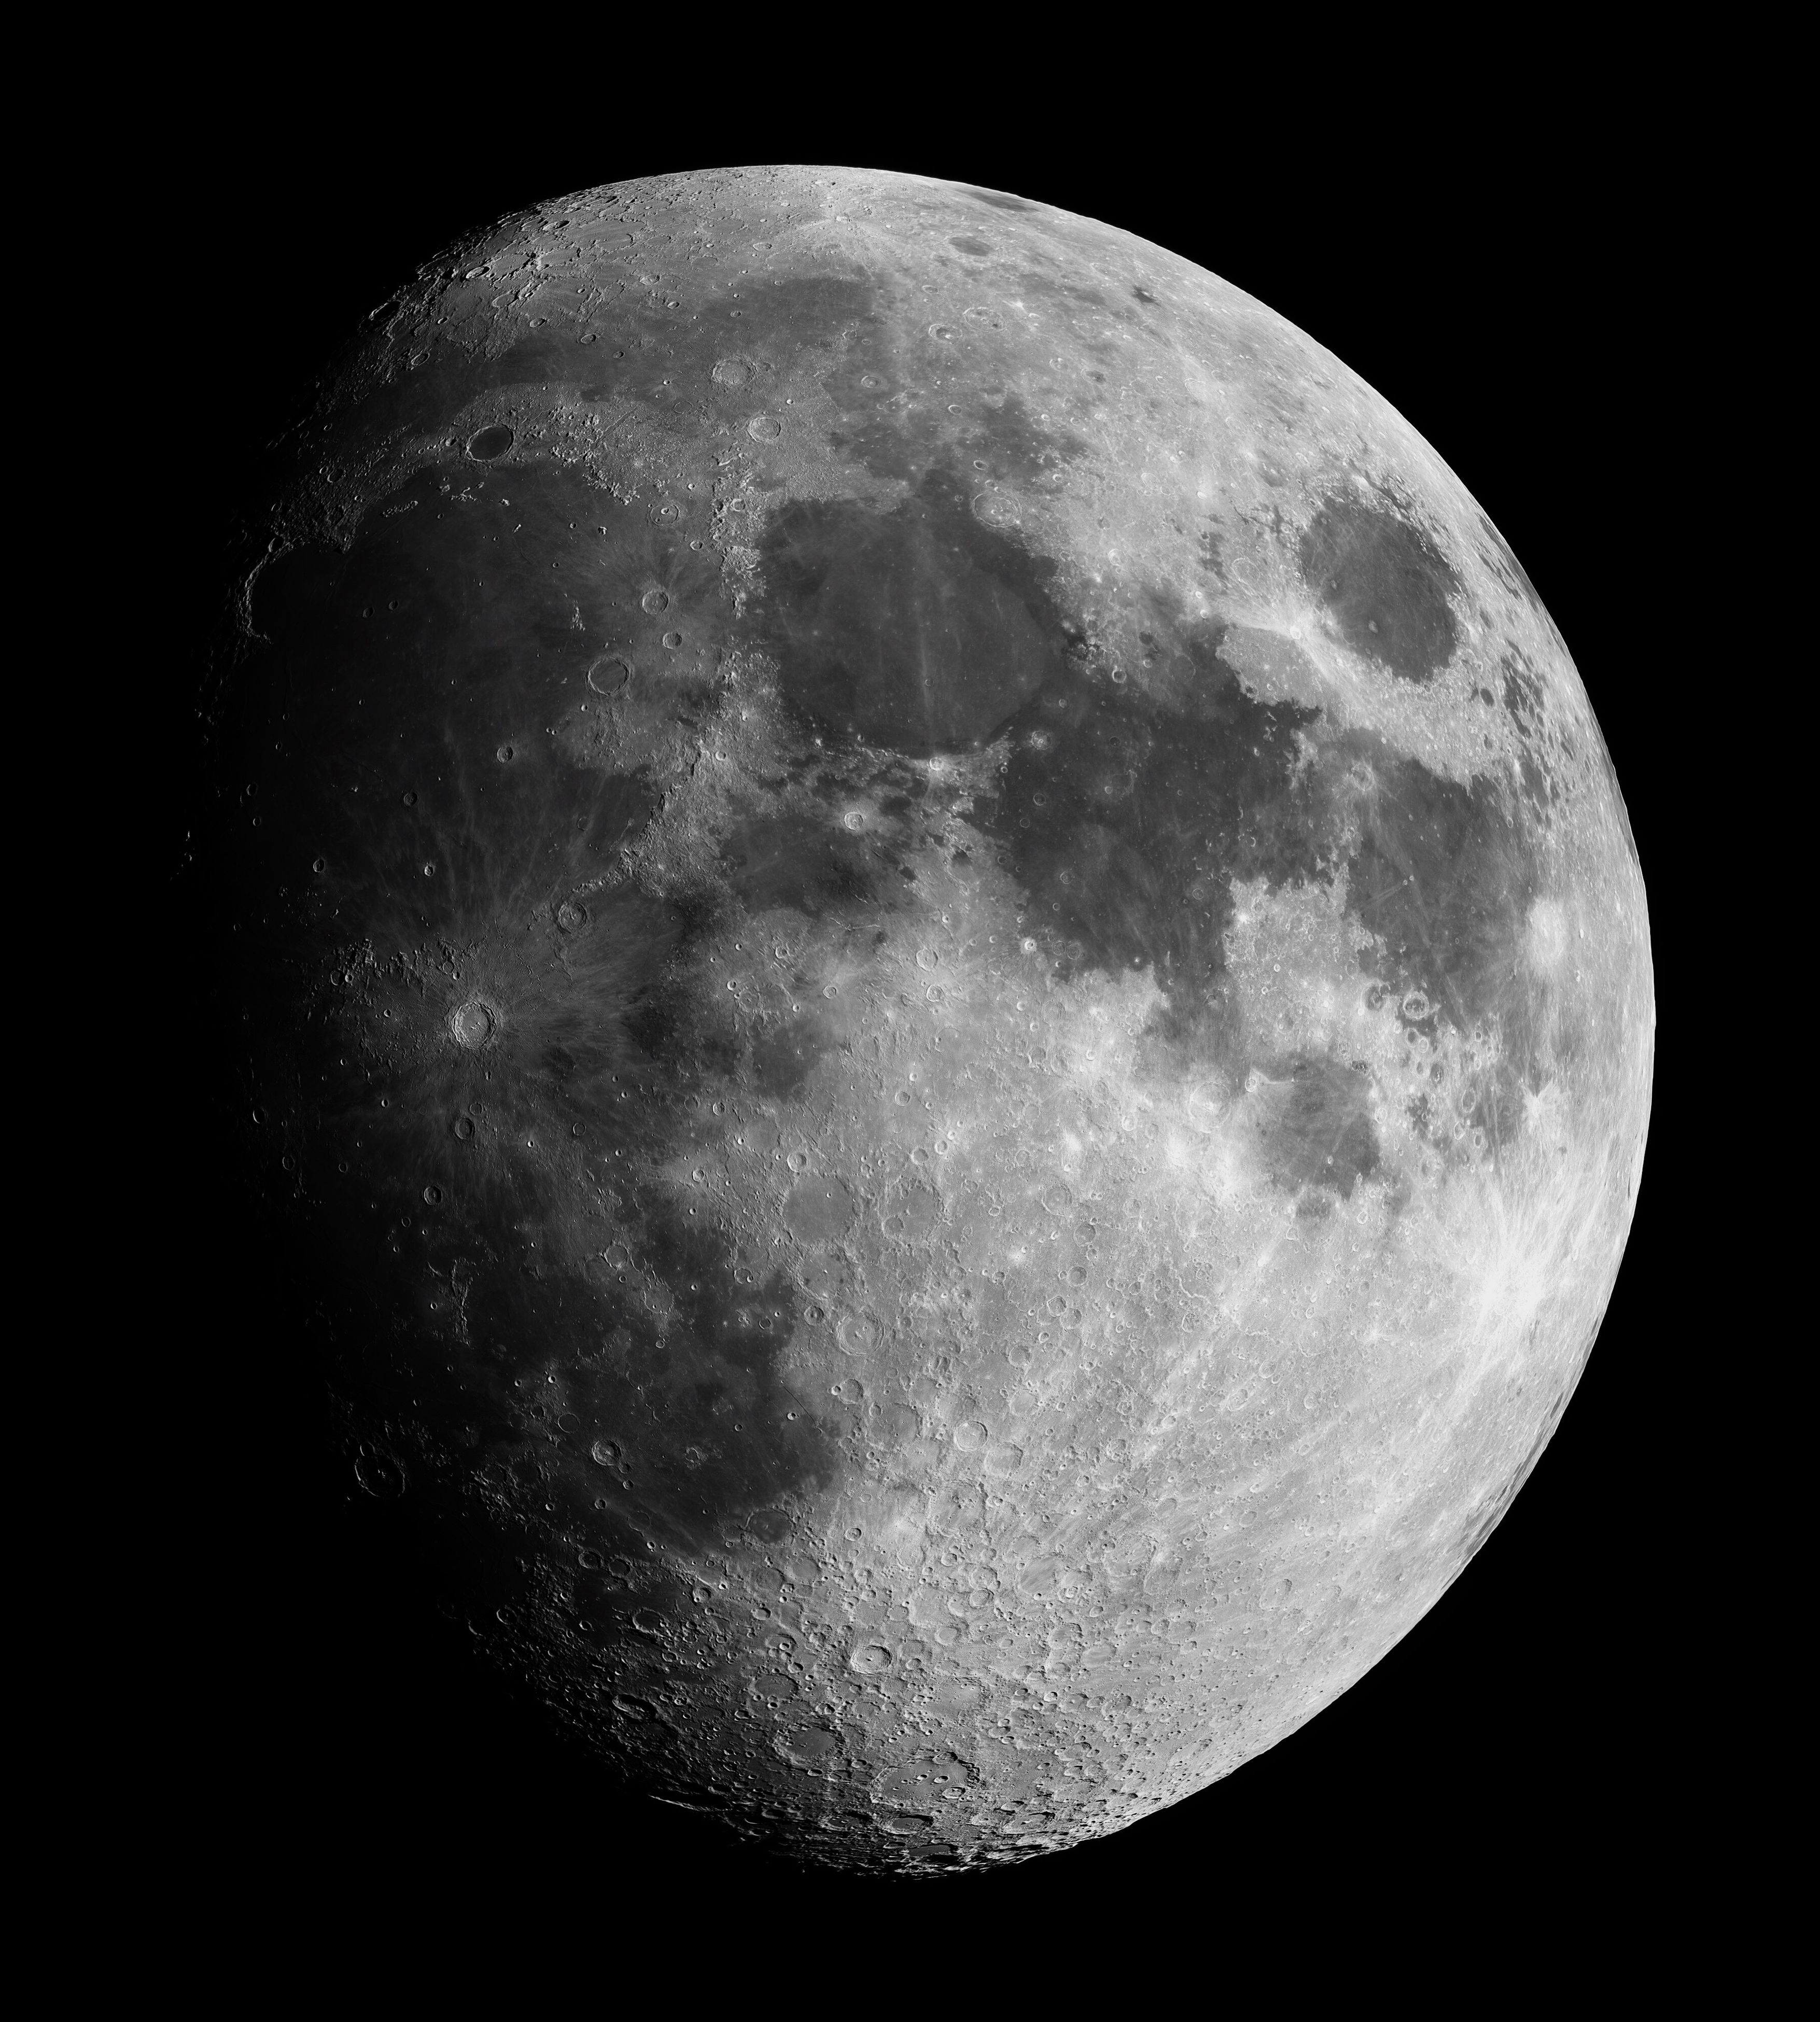 astronomy, night, circle, sphere, dark, black background, moon, moon surface, discovery, space exploration, low angle view, full moon, planetary moon, studio shot, close-up, exploration, space, shape, copy space, sky